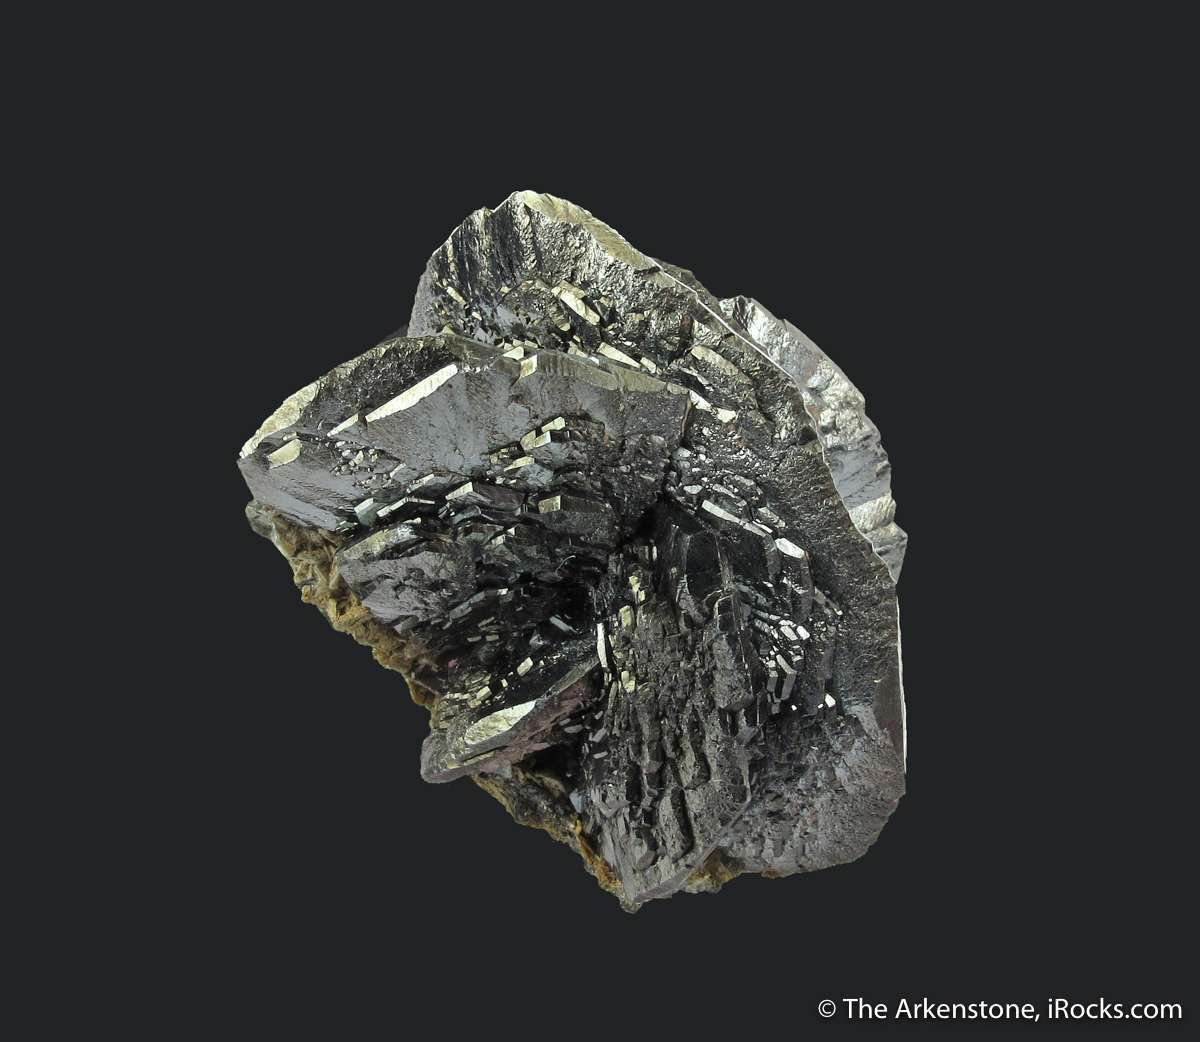 This trimmed balanced miniature shows superb cluster bladed Hematite